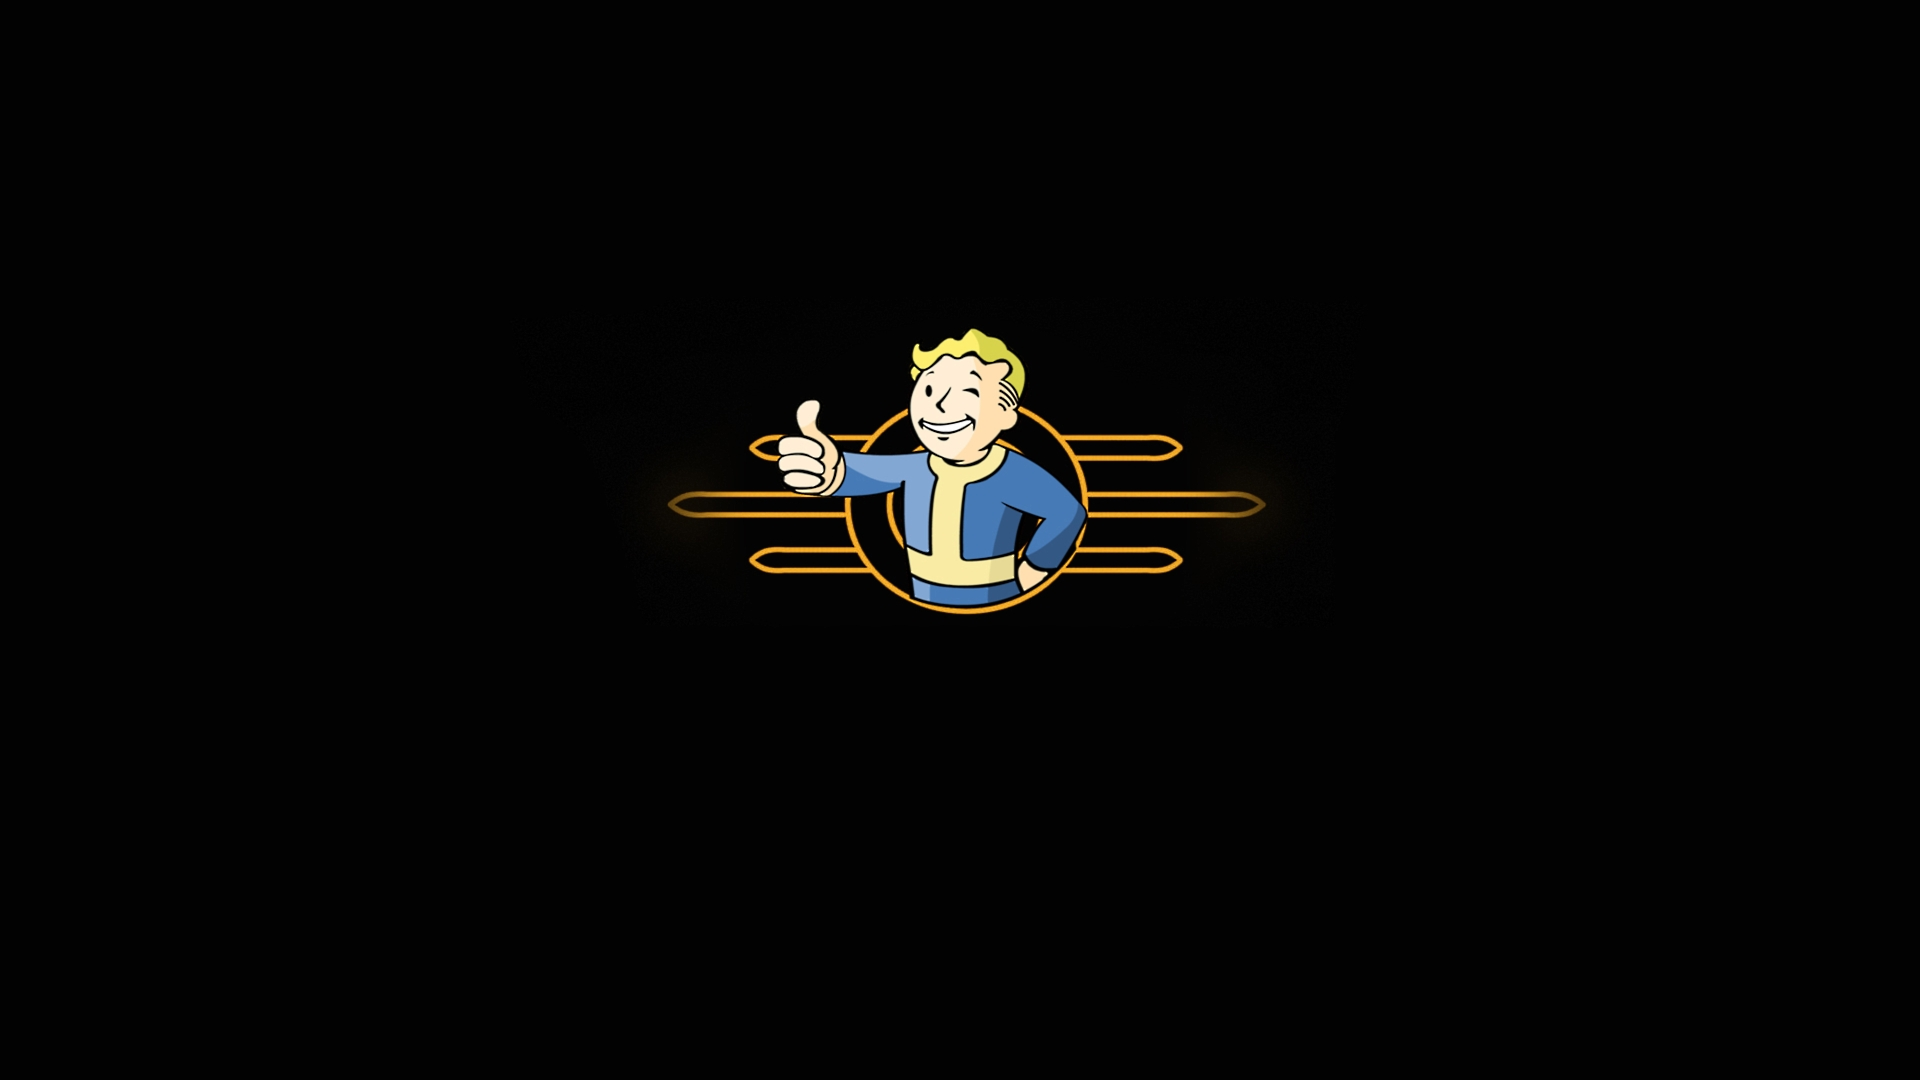 fallout wallpaper hd 1920x1080